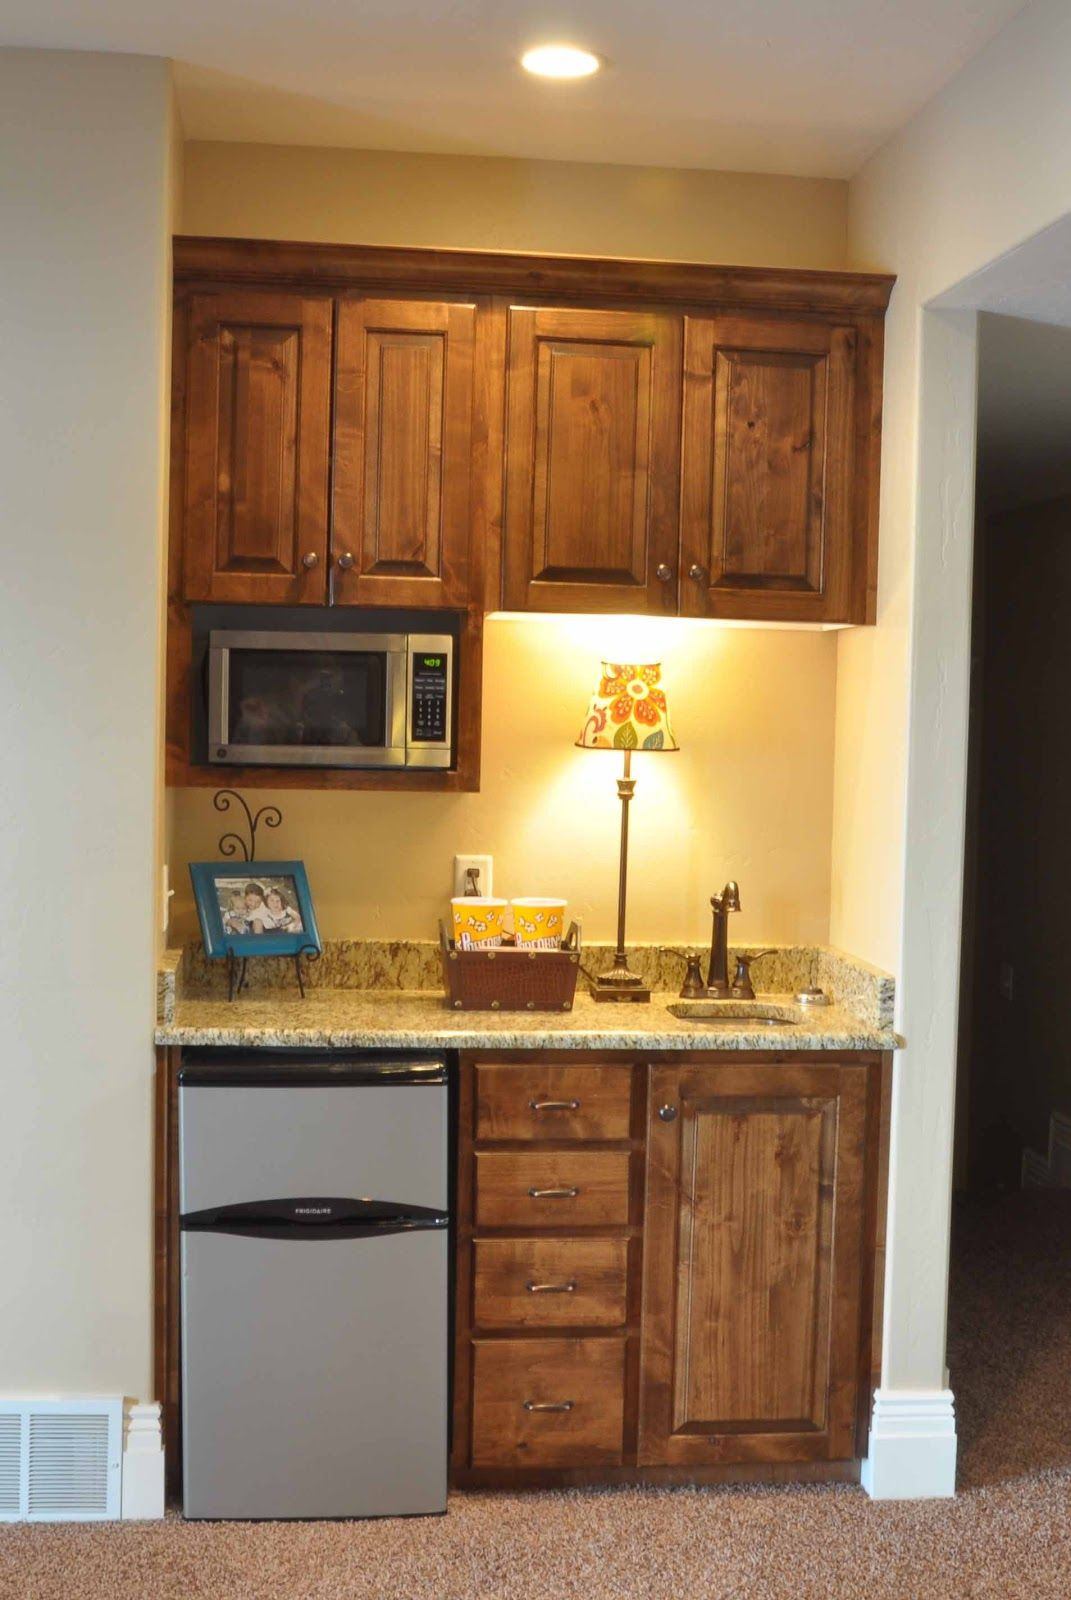 best images about basement on pinterest candy display gilmore